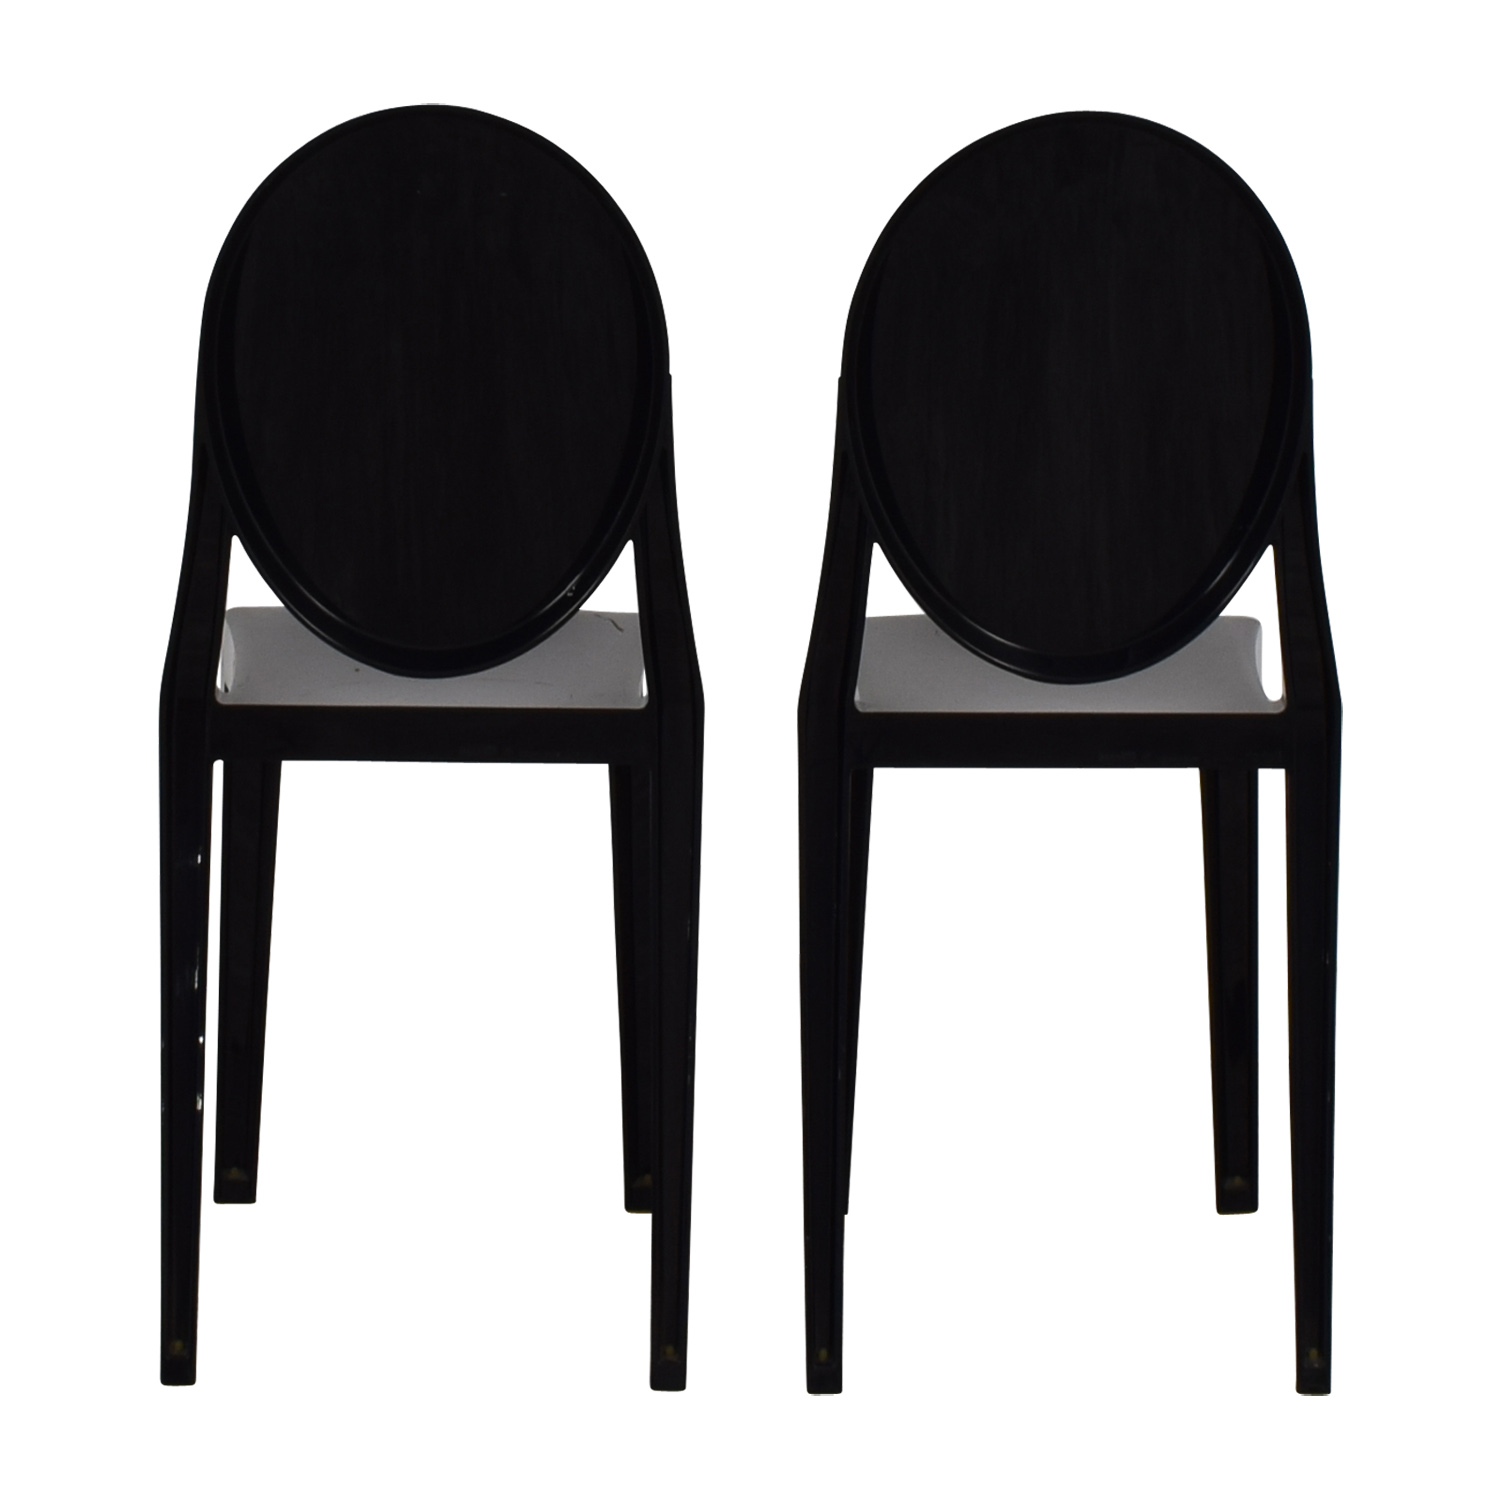 Kartell Kartell Victoria Ghost Black Chairs price